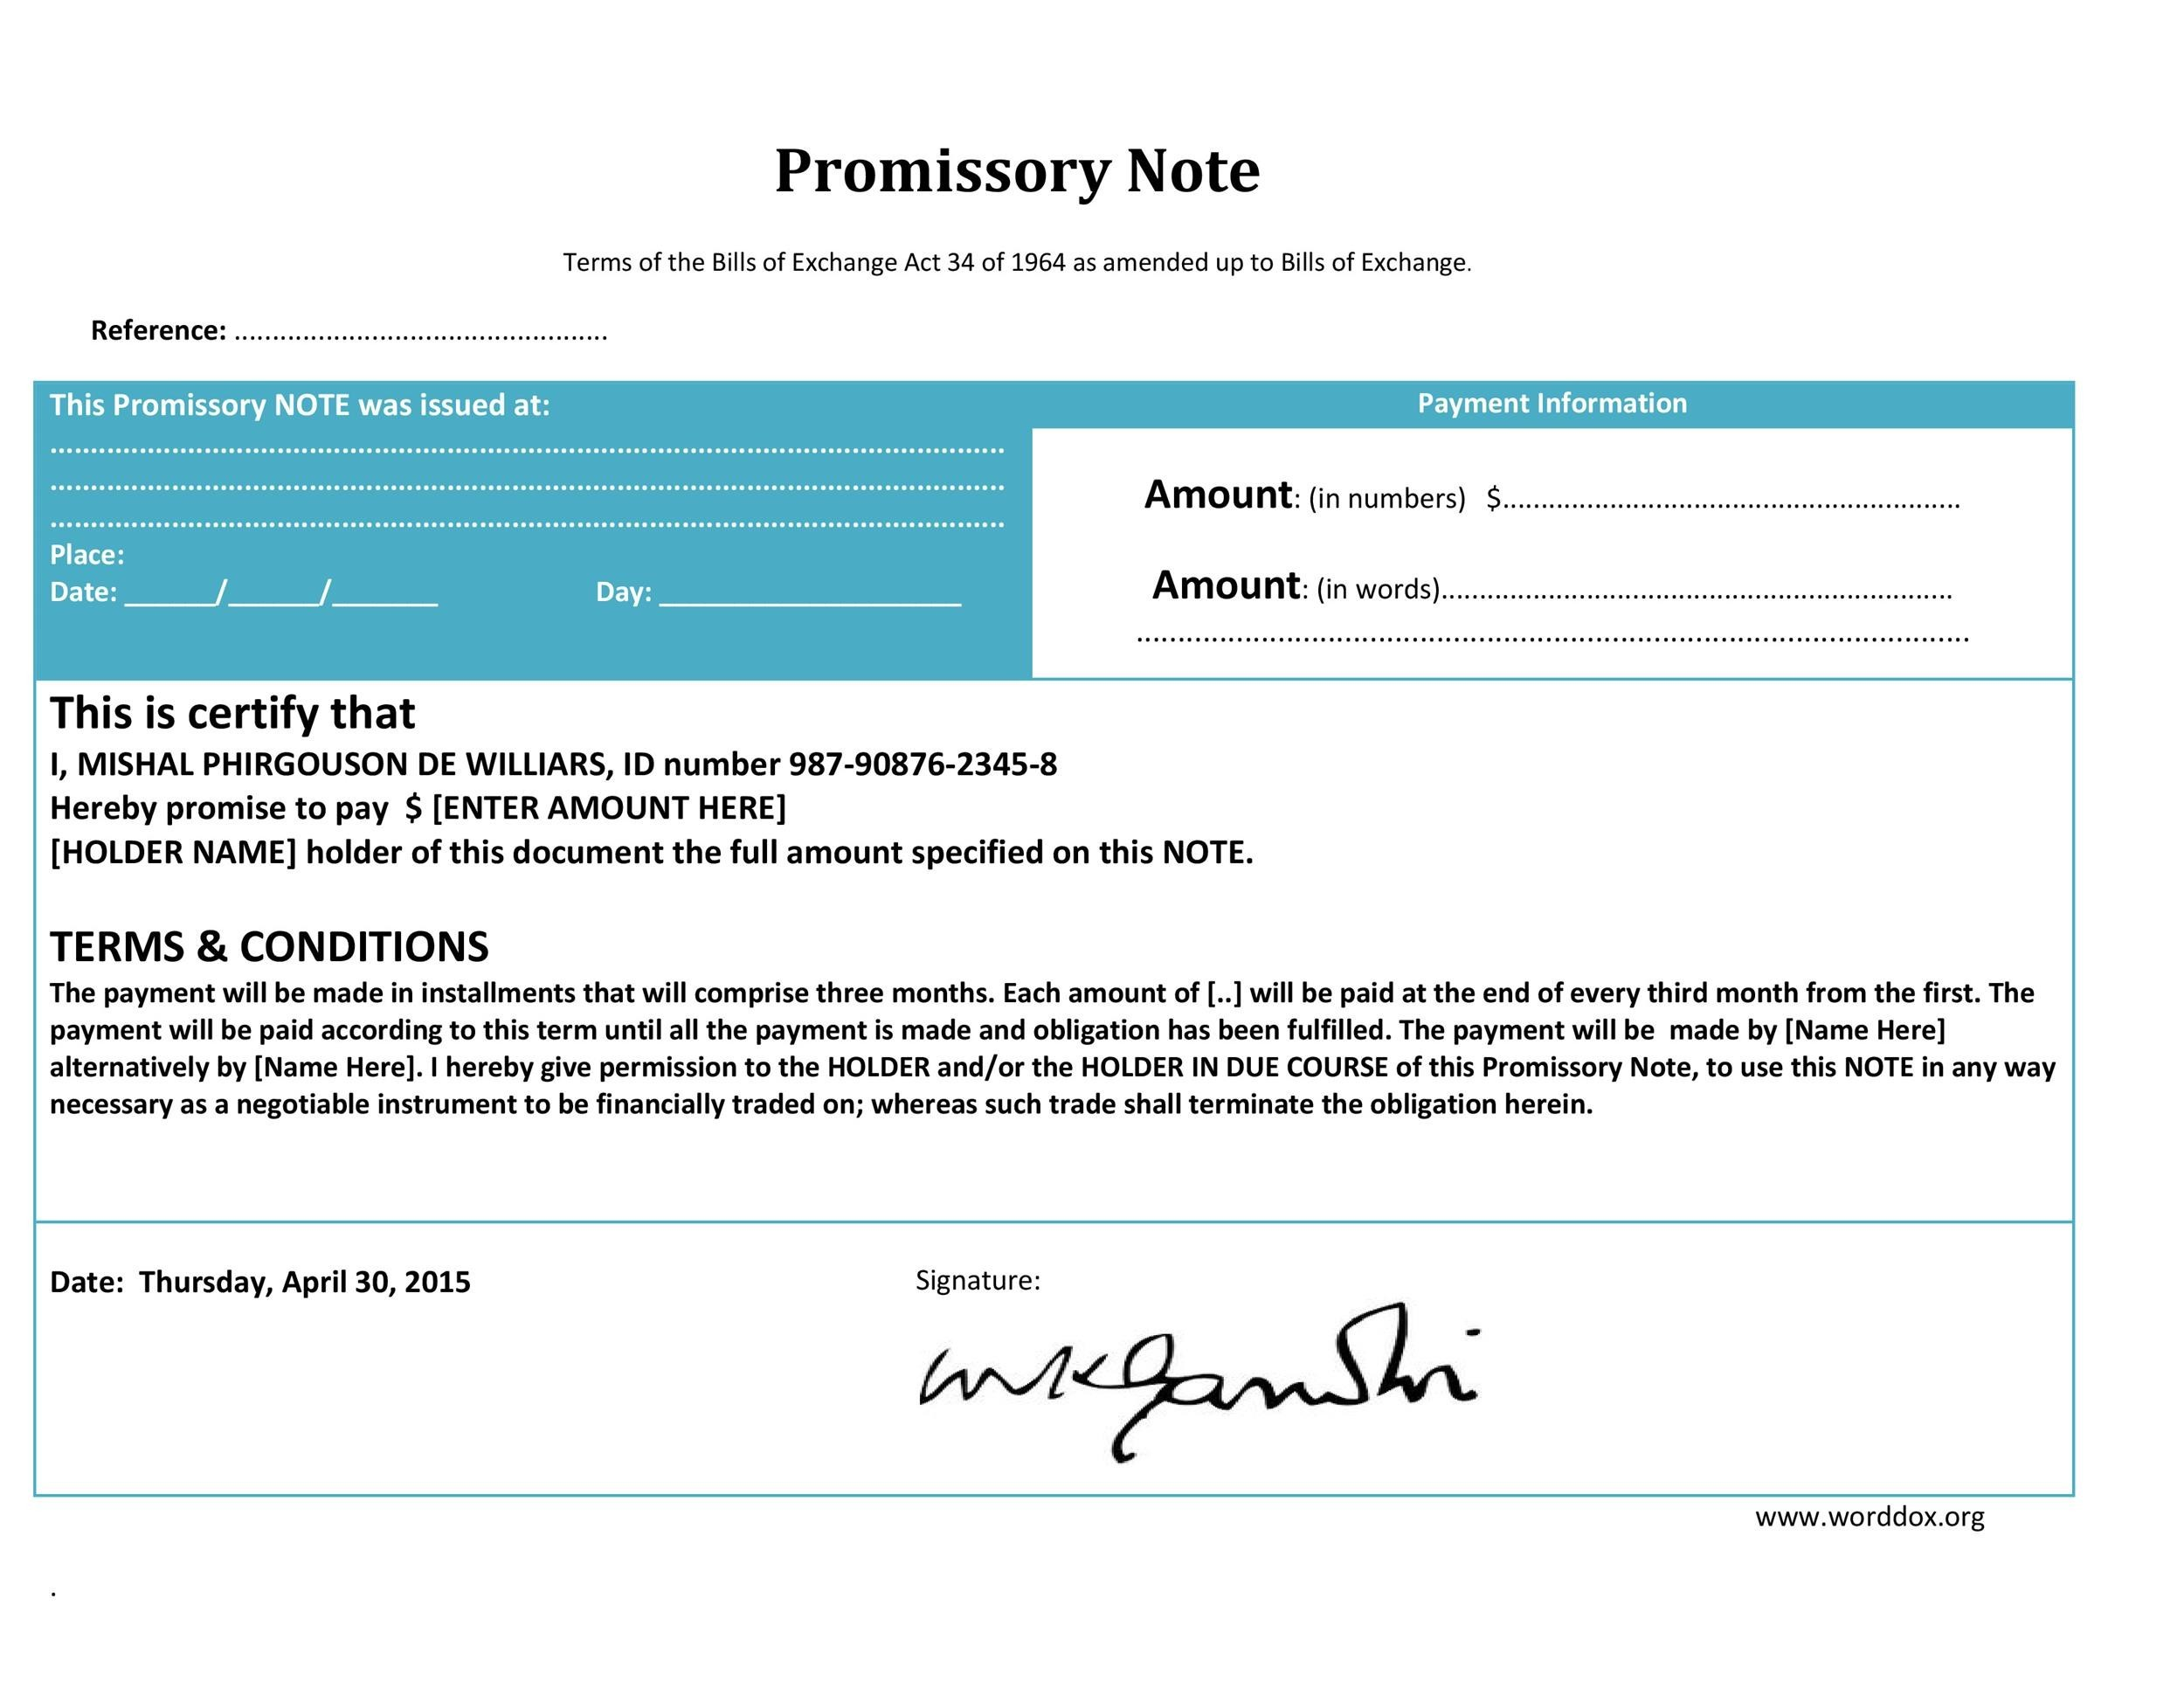 45 FREE Promissory Note Templates  Forms Word  PDF - Template Lab - promissory note template free